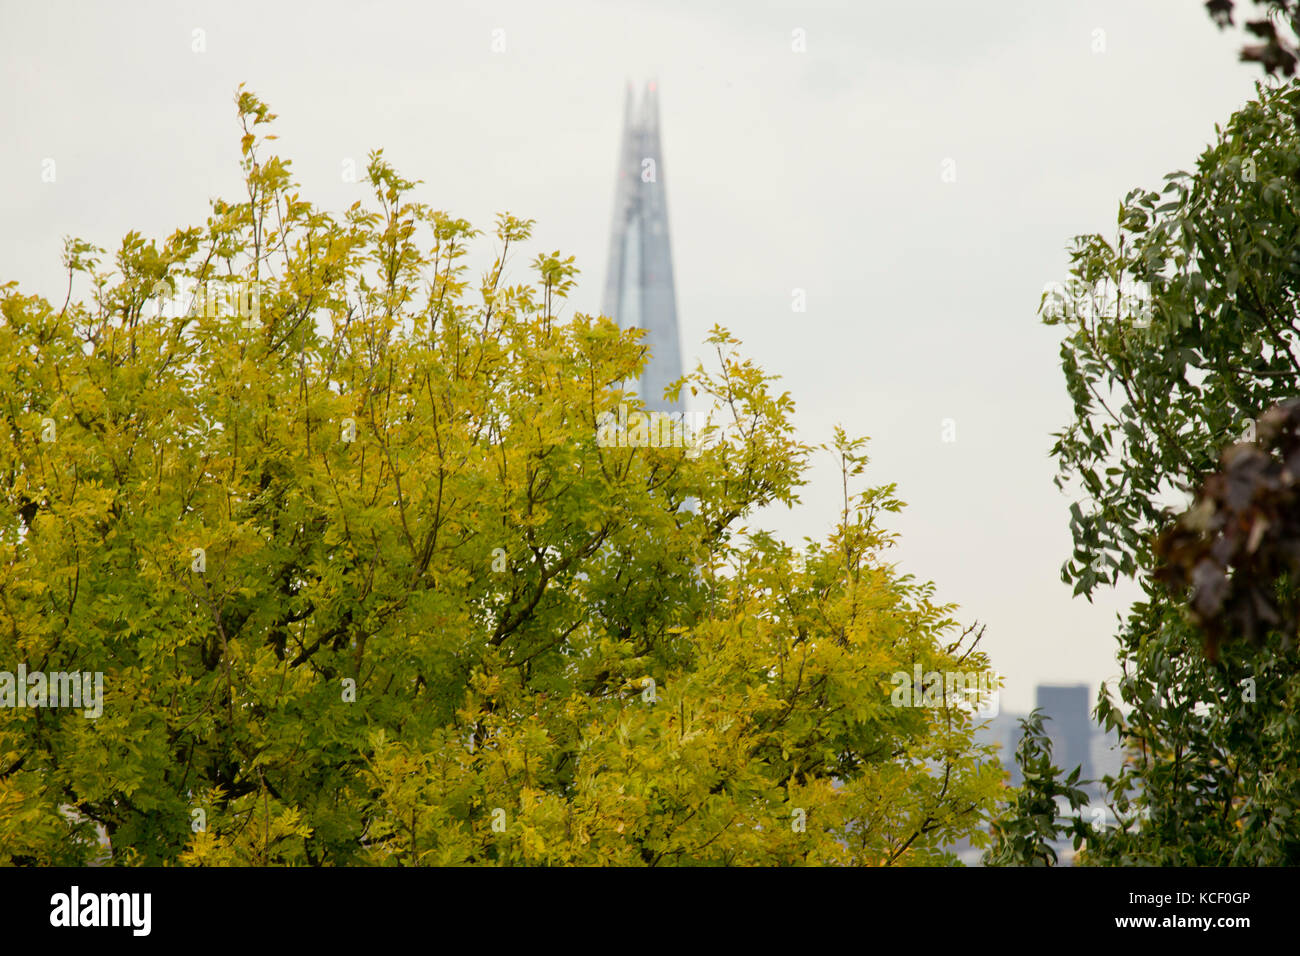 London, UK. 4th October, 2017. View from Primrose Hill, London UK. Credit: Sebastian Remme/Alamy Live News Stock Photo